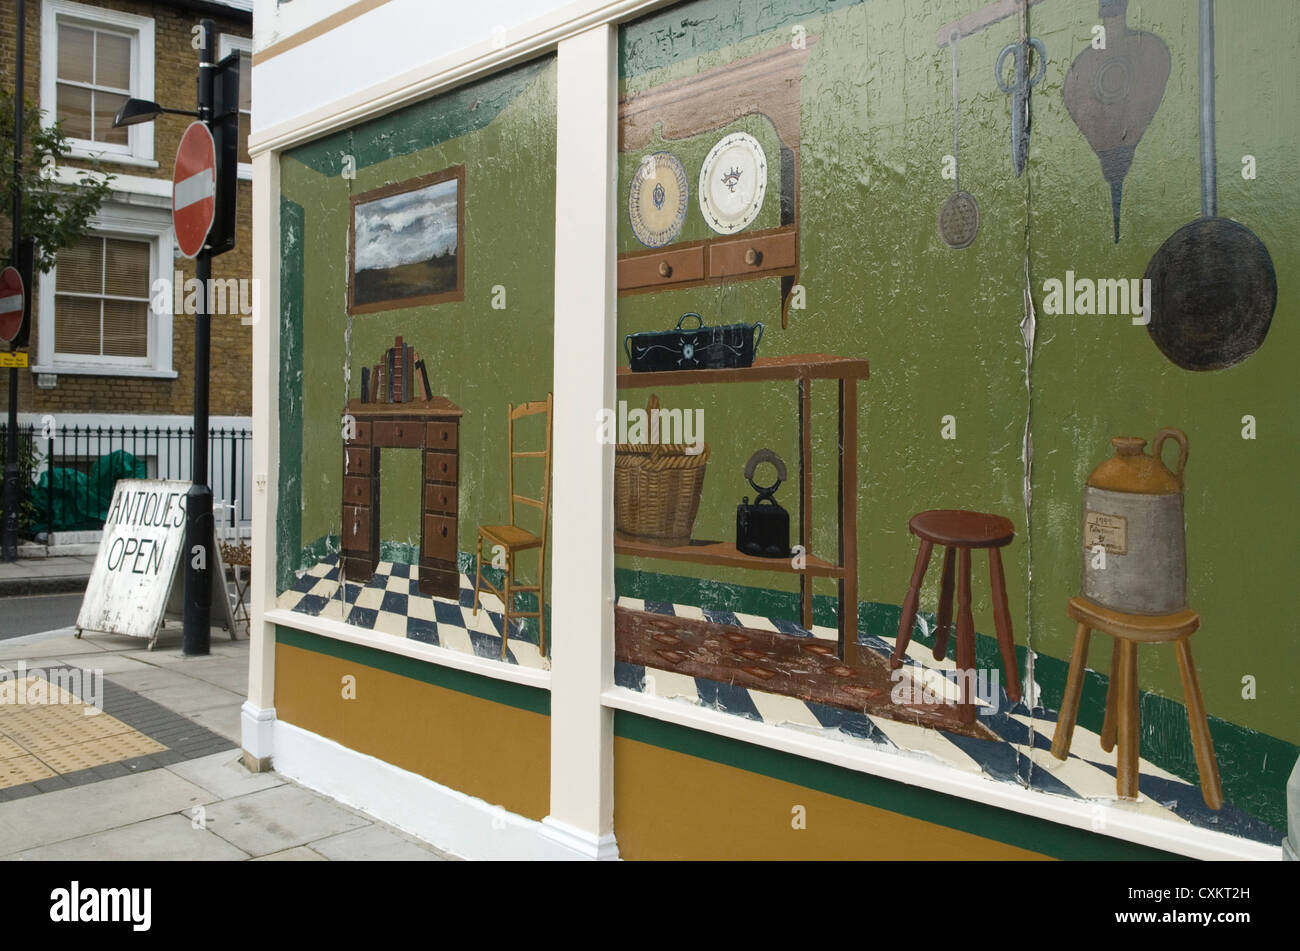 Antique shop London UK - Stock Image